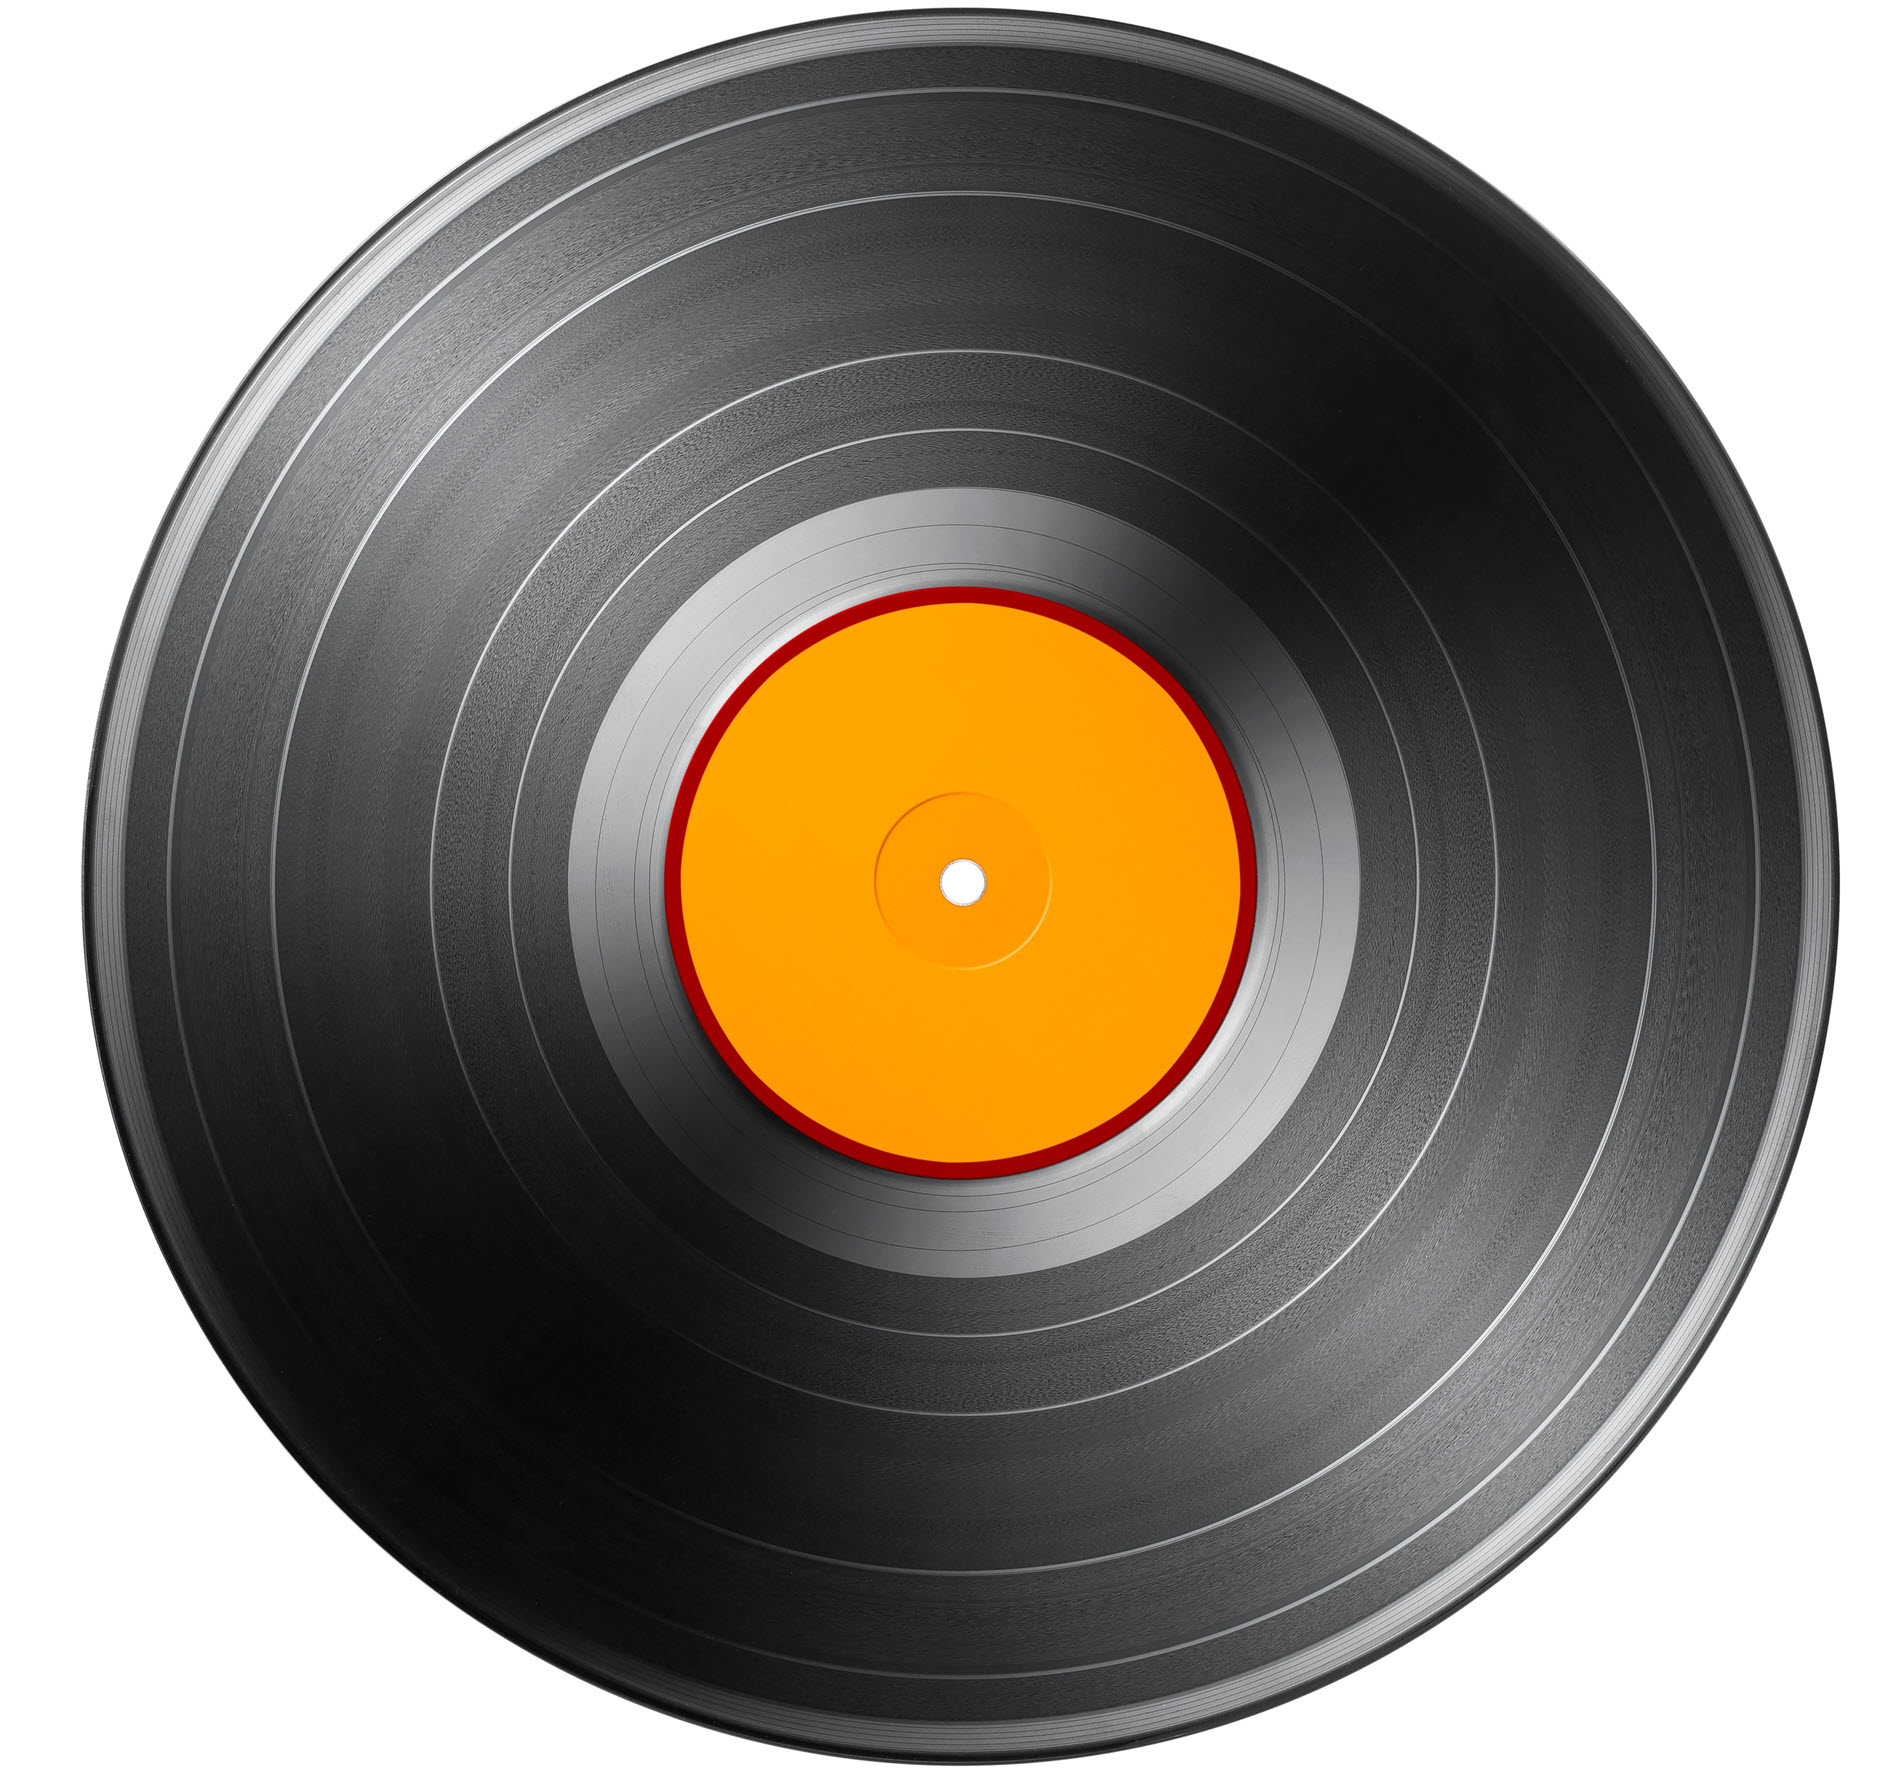 View of vinyl album without printing on the label.